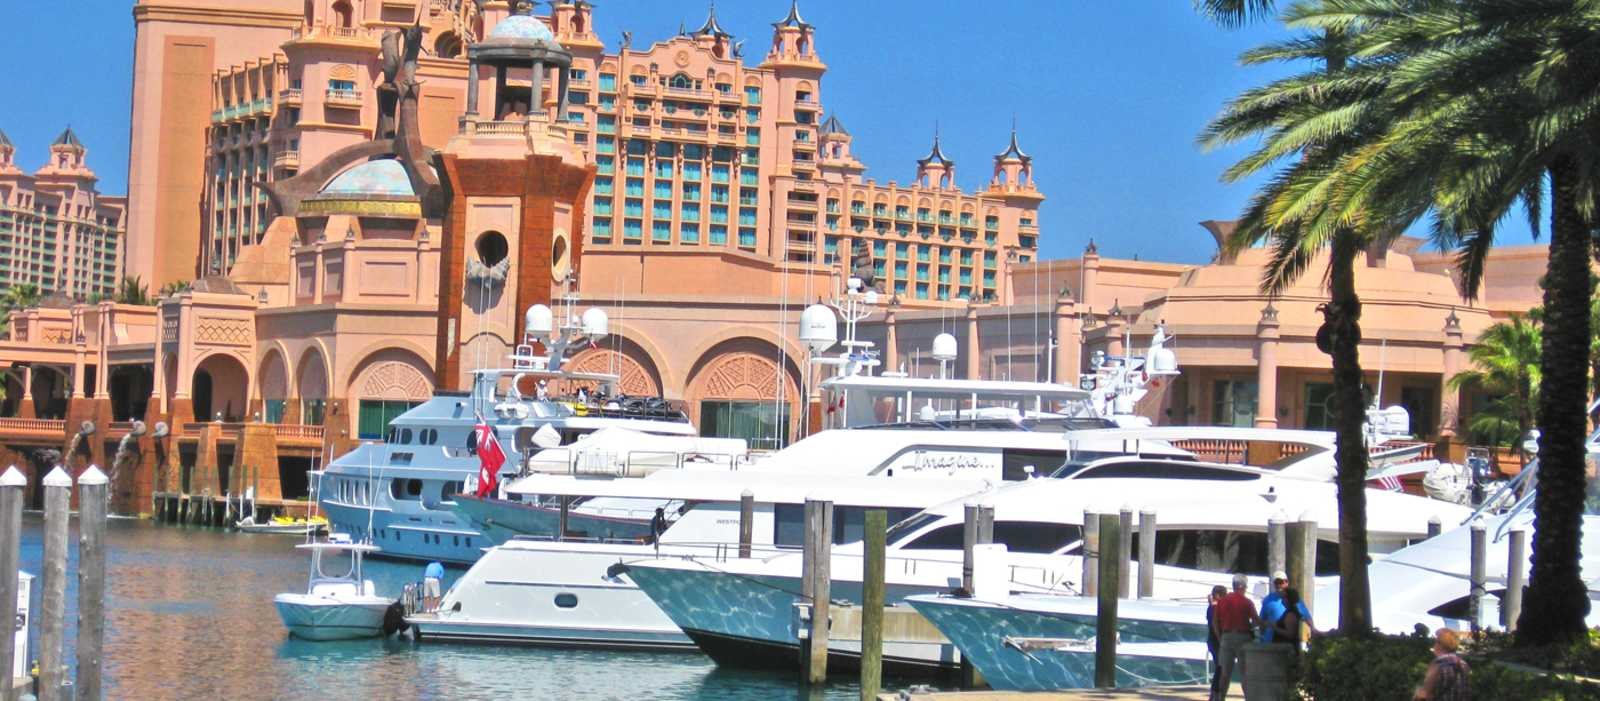 Marina des Atlantis Resorts